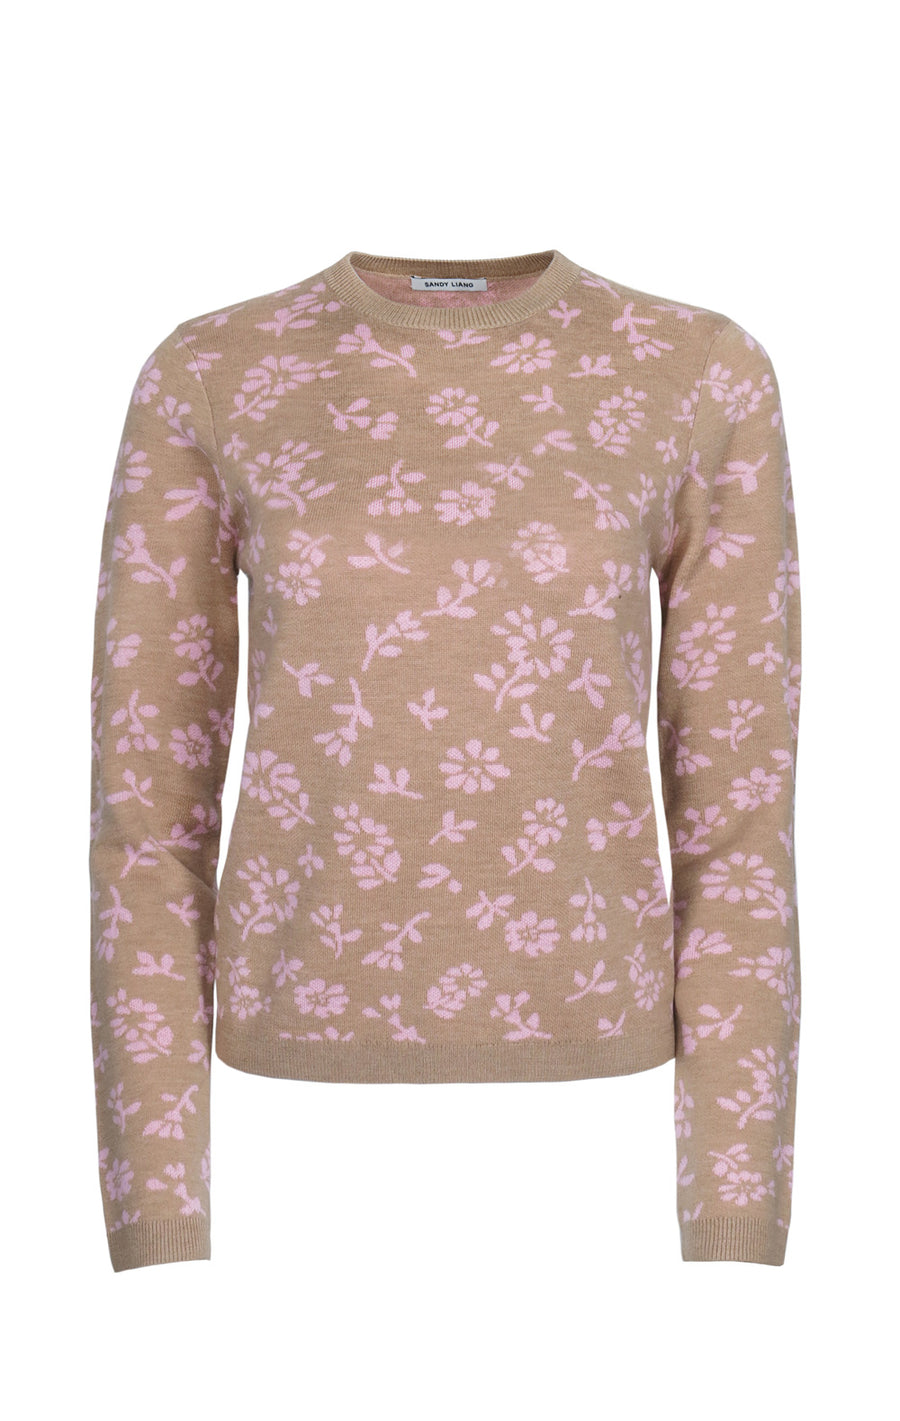 Floral Sweater in Pink/Brown